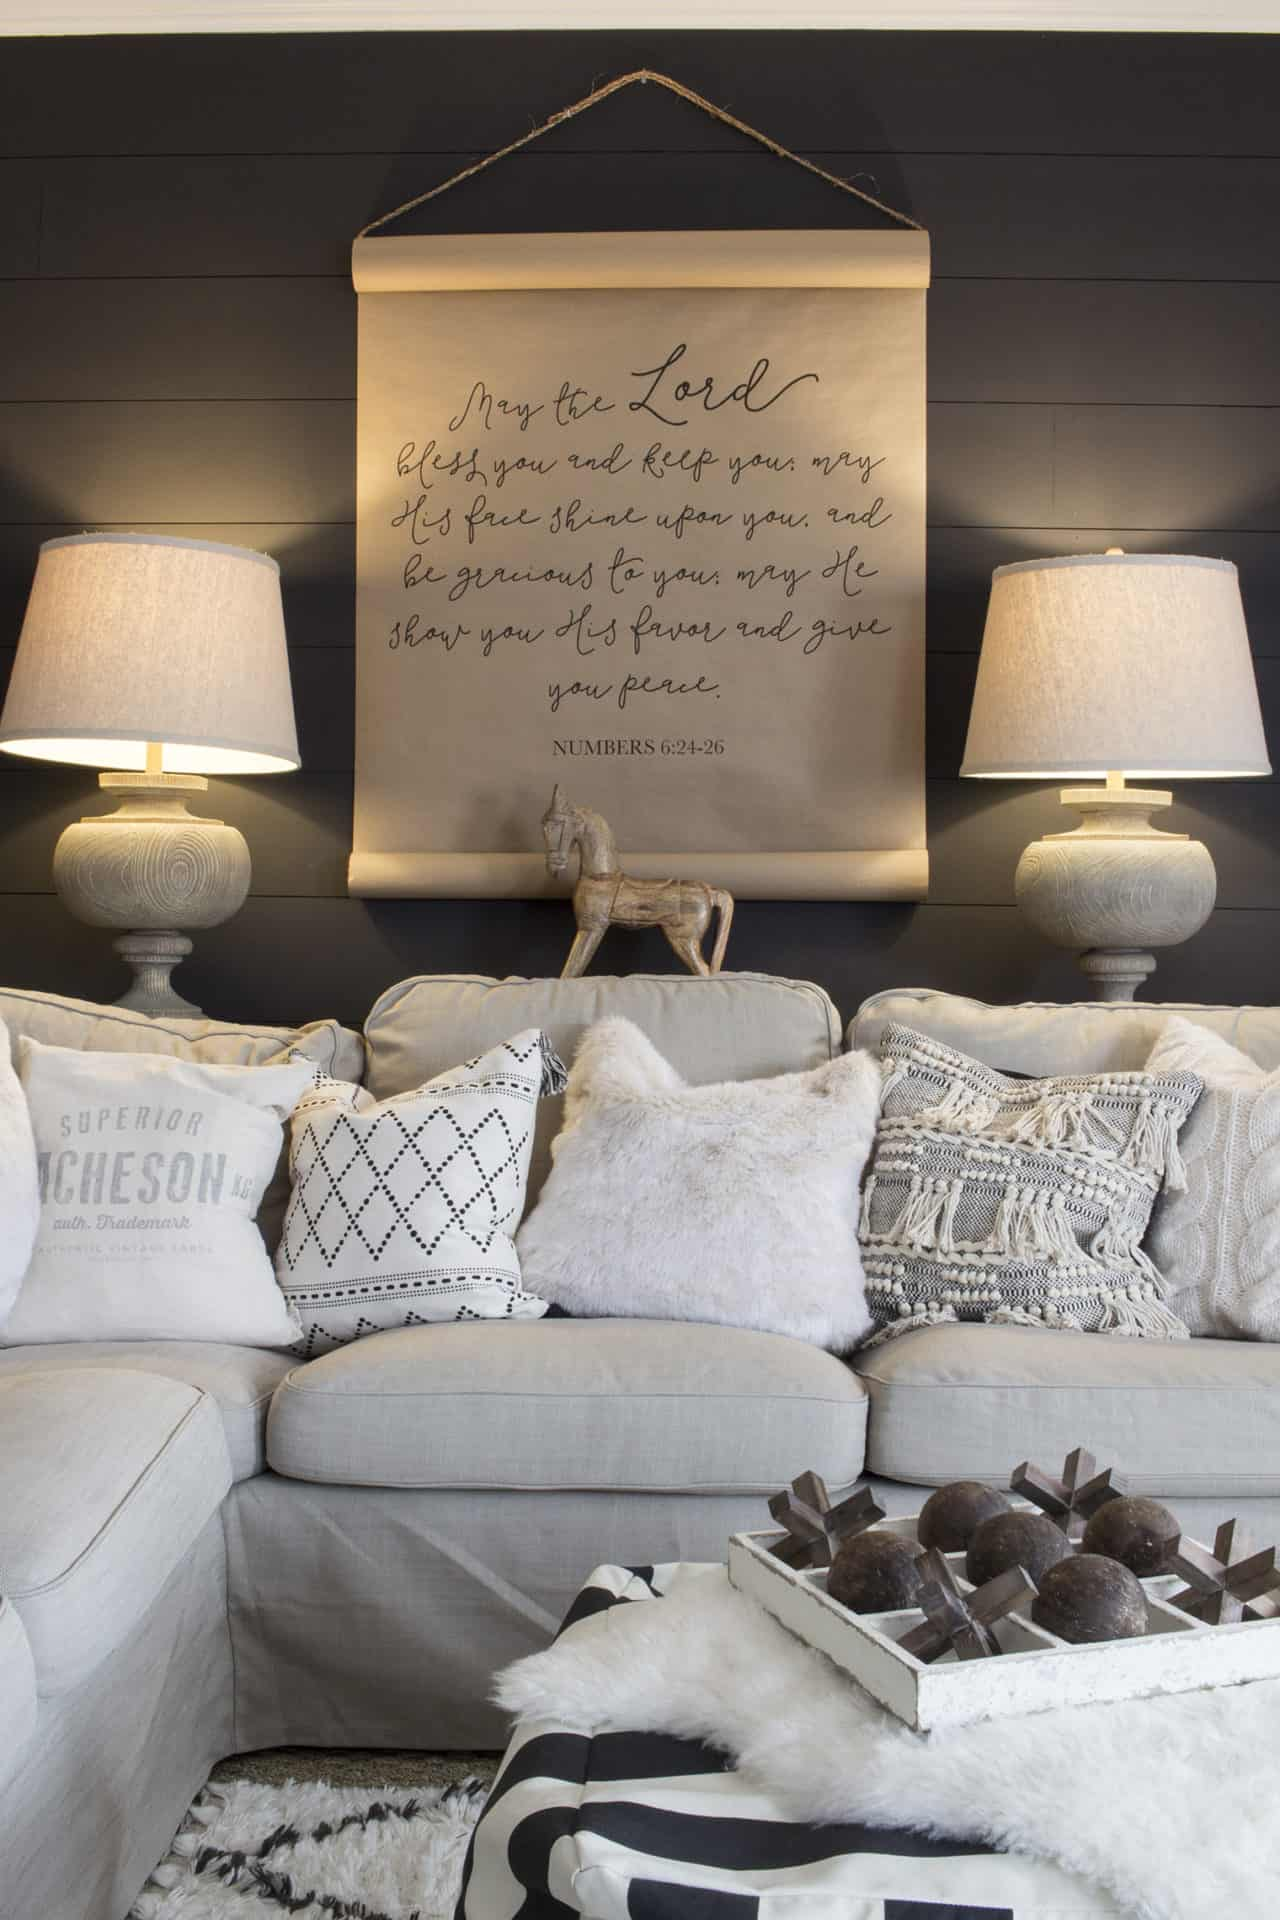 black shiplapped wall with brown kraft paper sign hanging over a cream couch with throw pillows